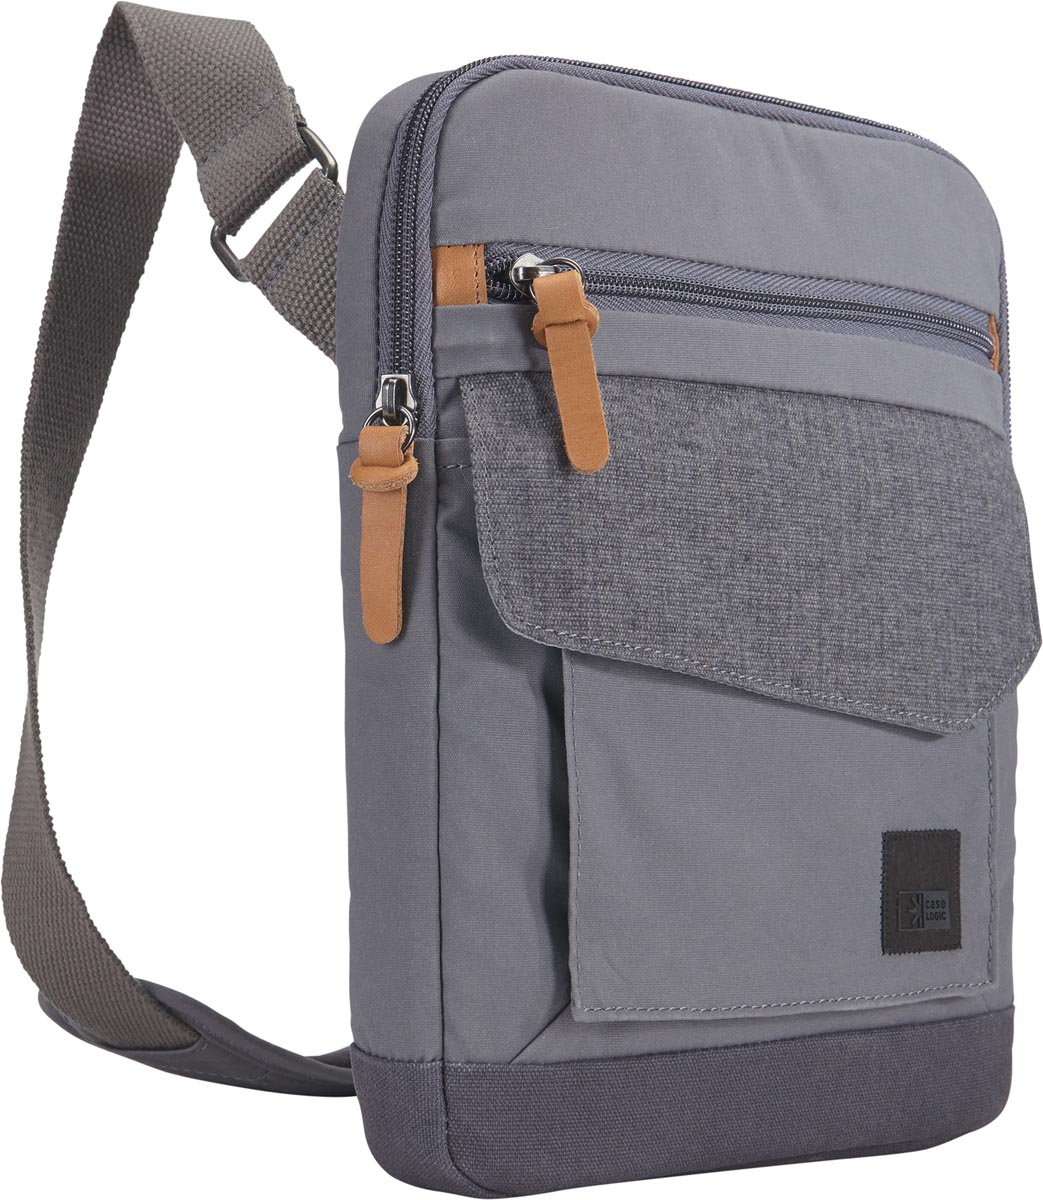 Case Logic laptoptas voor 10 inch laptops, grijs